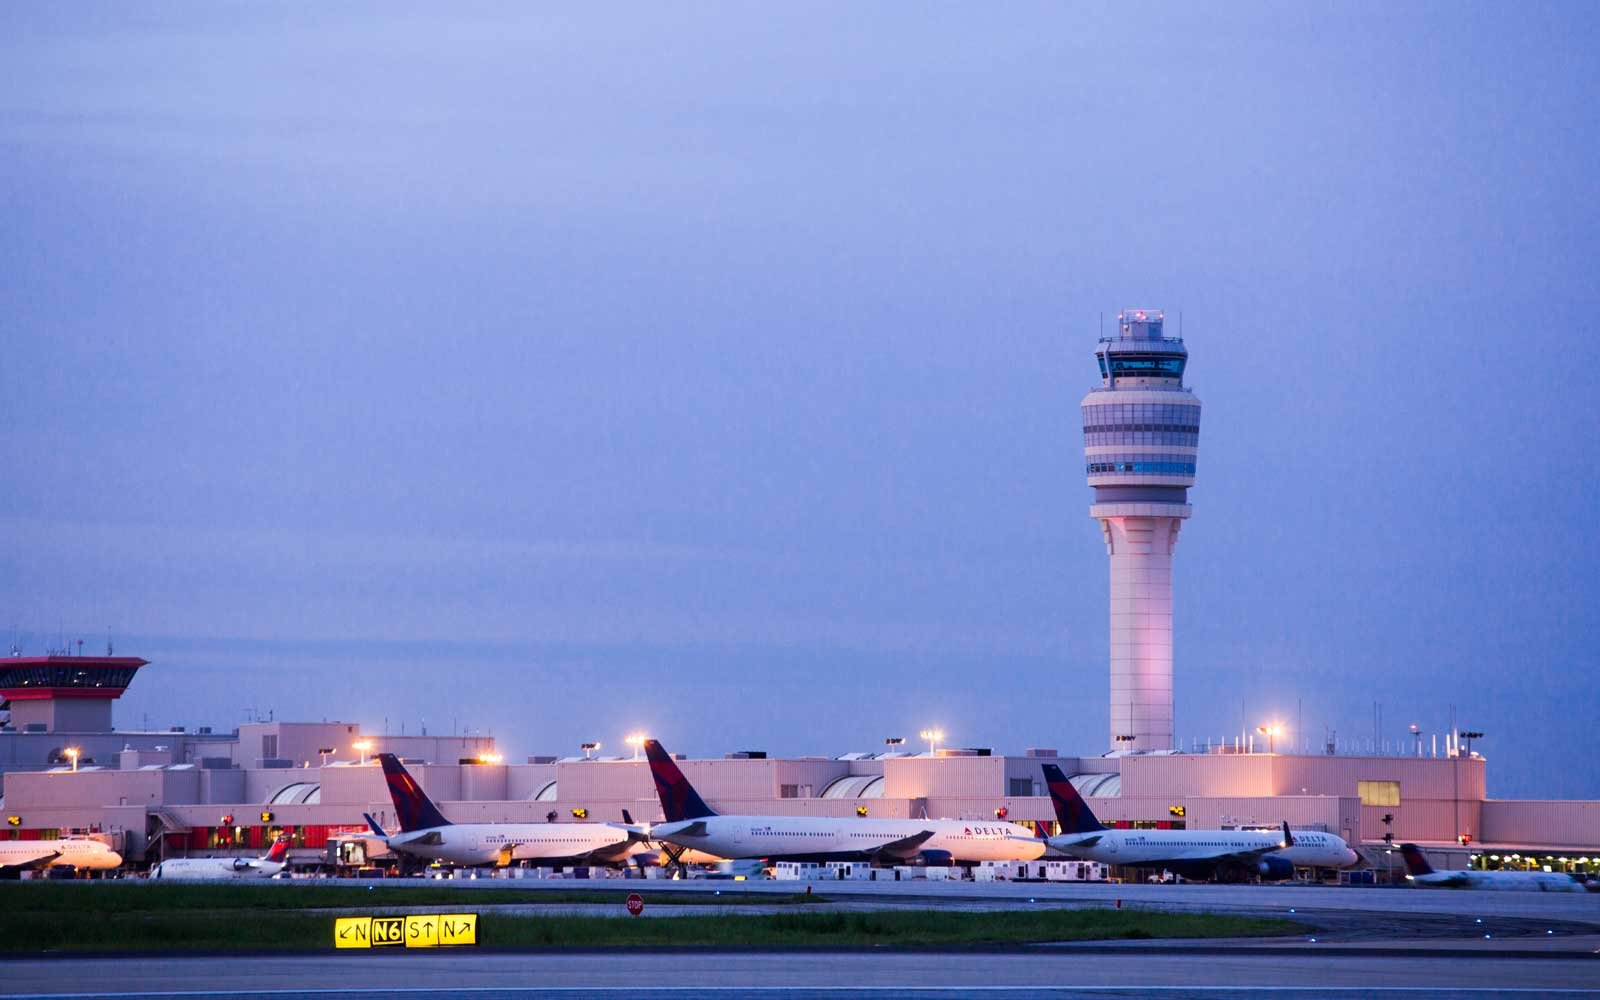 a5d3013fe77c Atlanta Airport Map and Terminal Guide: How to Make the Most of Your ...